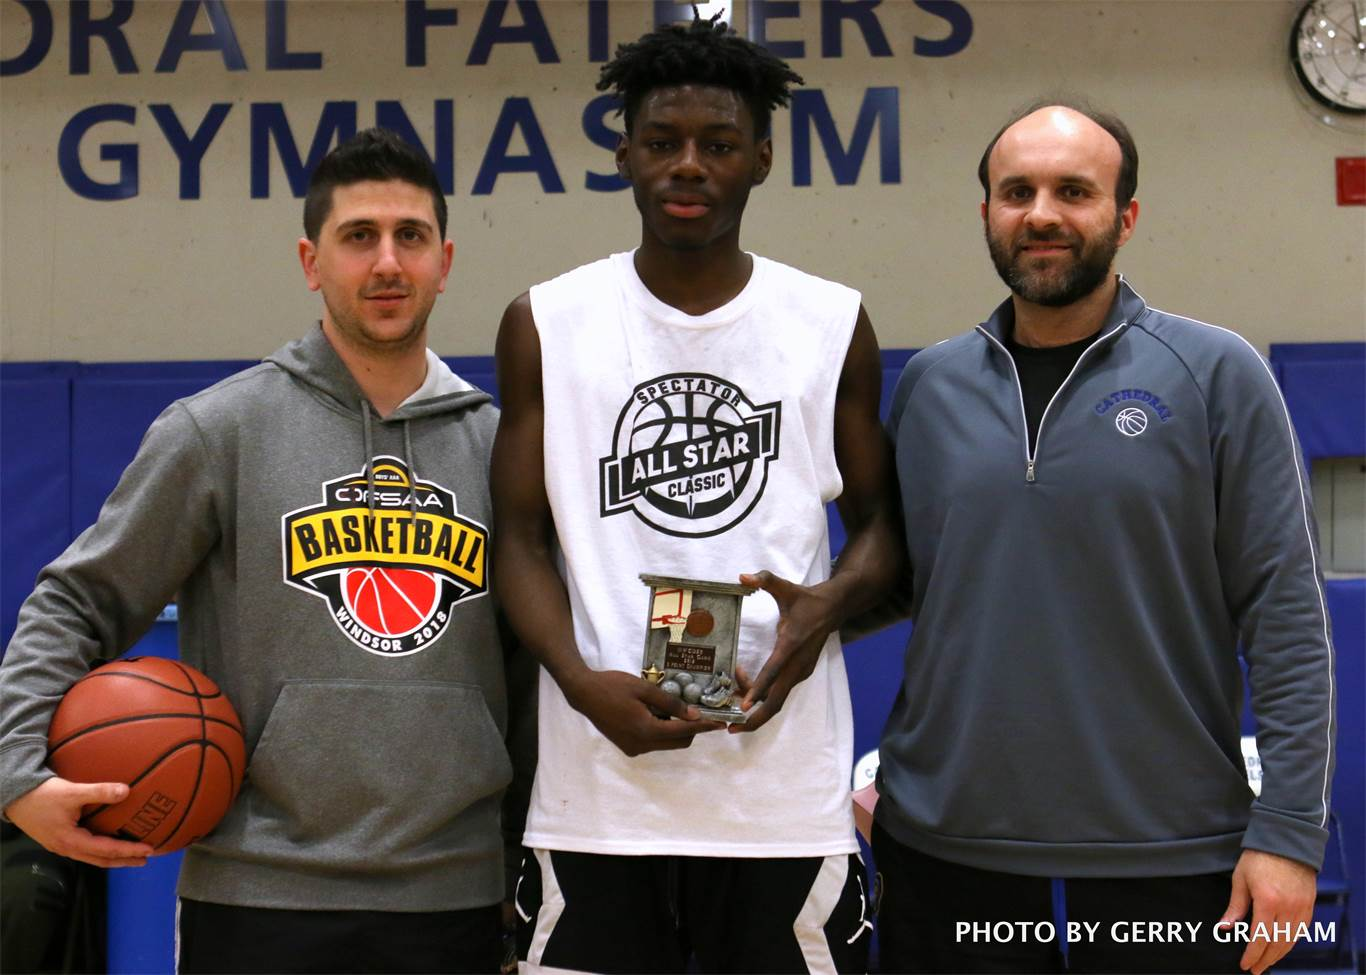 Nathan Bilamu of Cathedral was the winner of the halftime 3-point shooting contest. From left to right, Jae Dunphy, Biamu, Mario Susi. Photo by Gerry Graham.